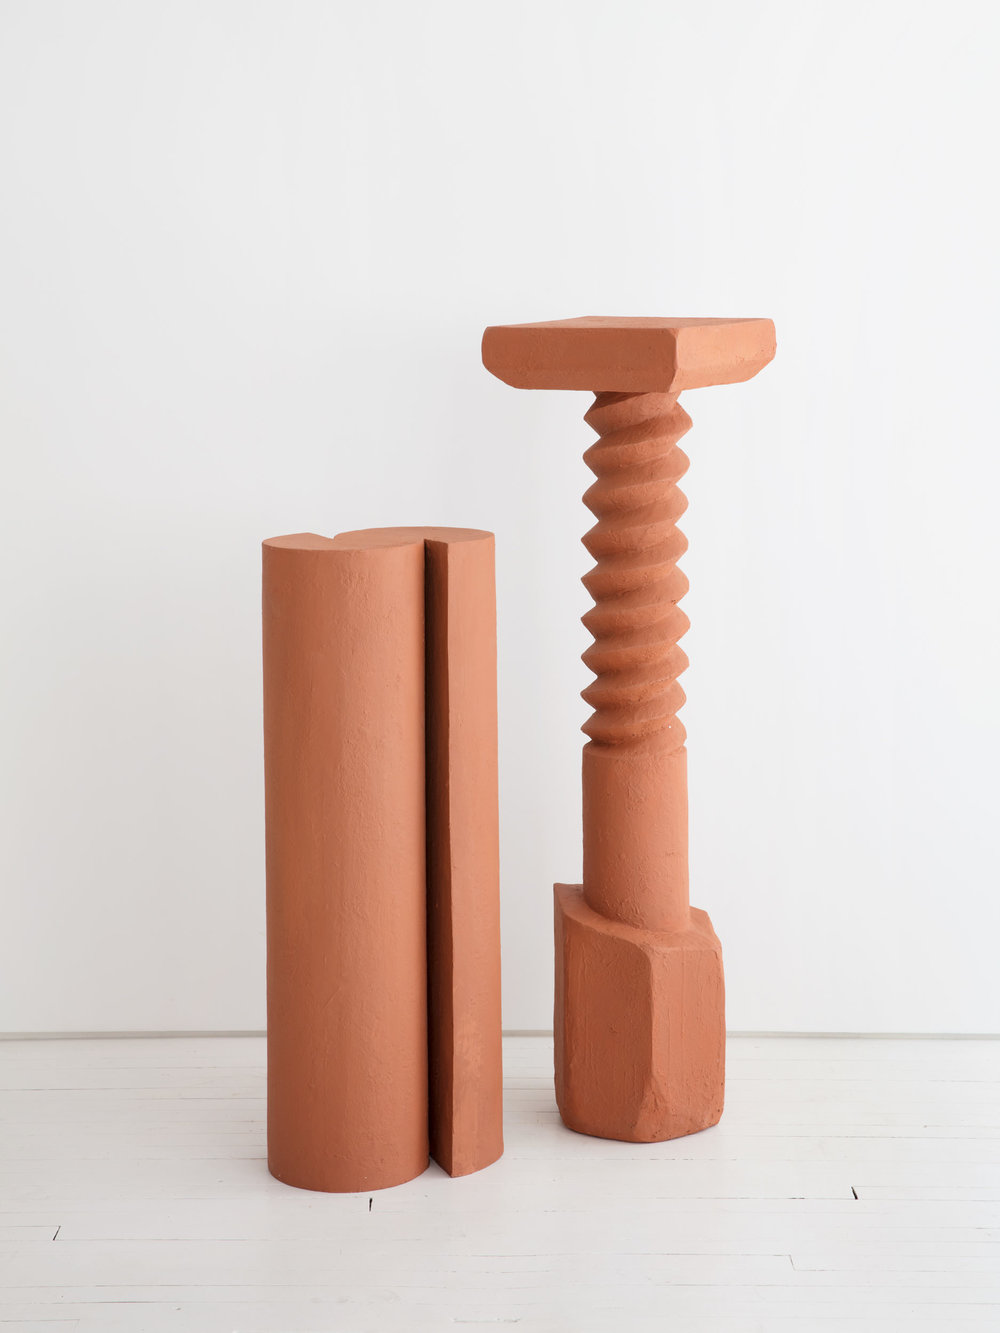 The Wallpaper* Design Award 2019 - terracotta/cast iron pedestal. Photographed at Egg collective (NYC) by Hannah Whitaker.